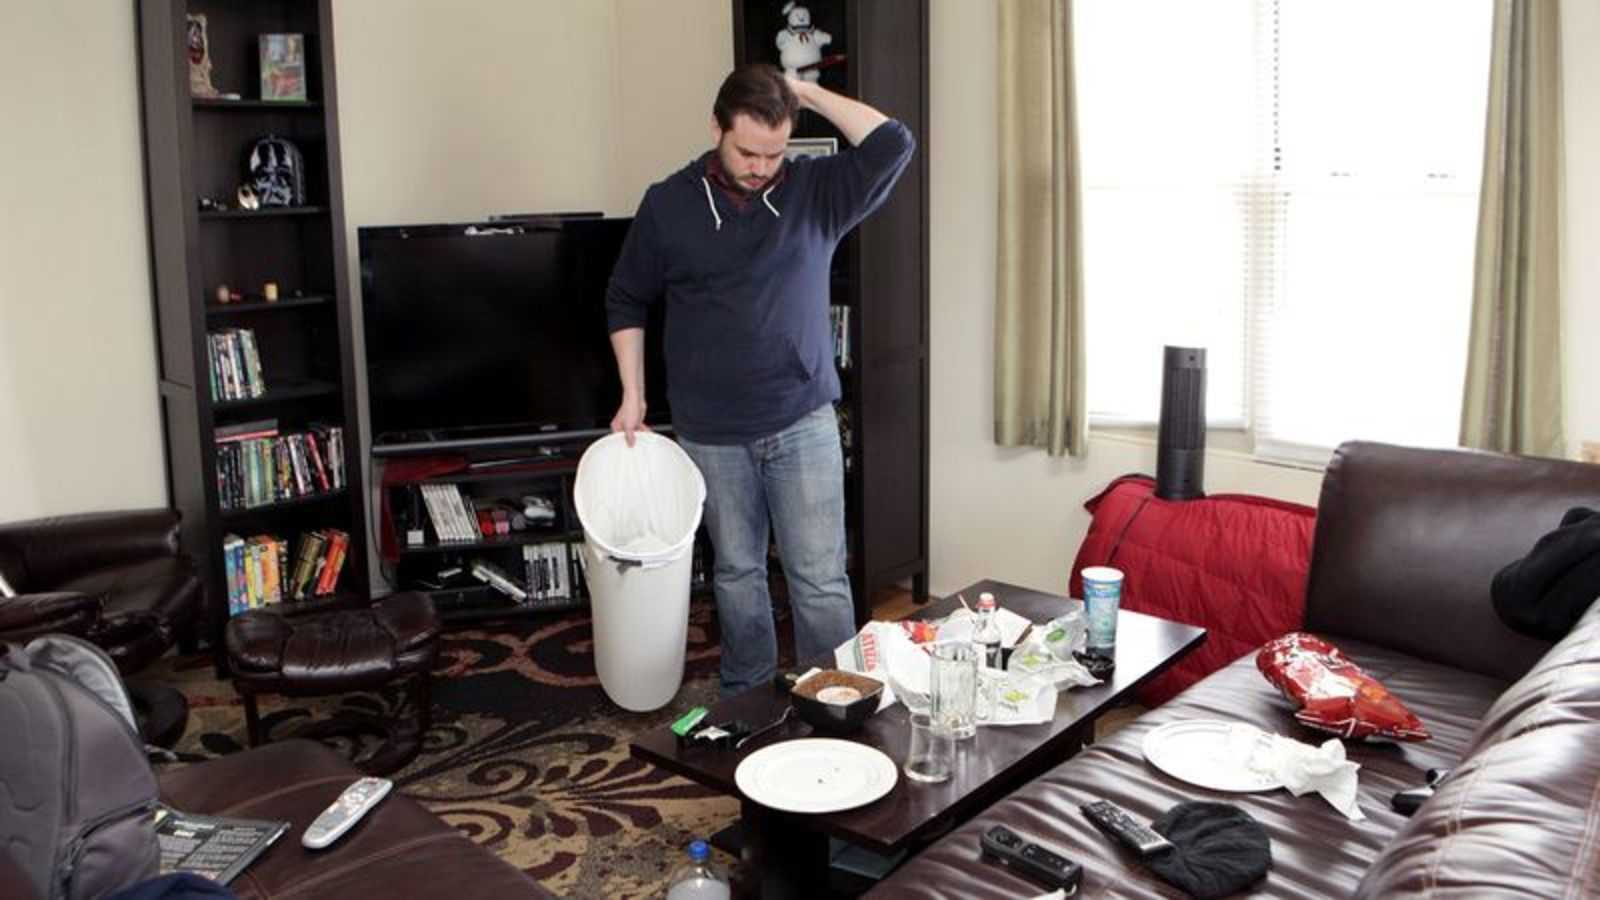 Area Man Cleans Apartment Once Every Relationship